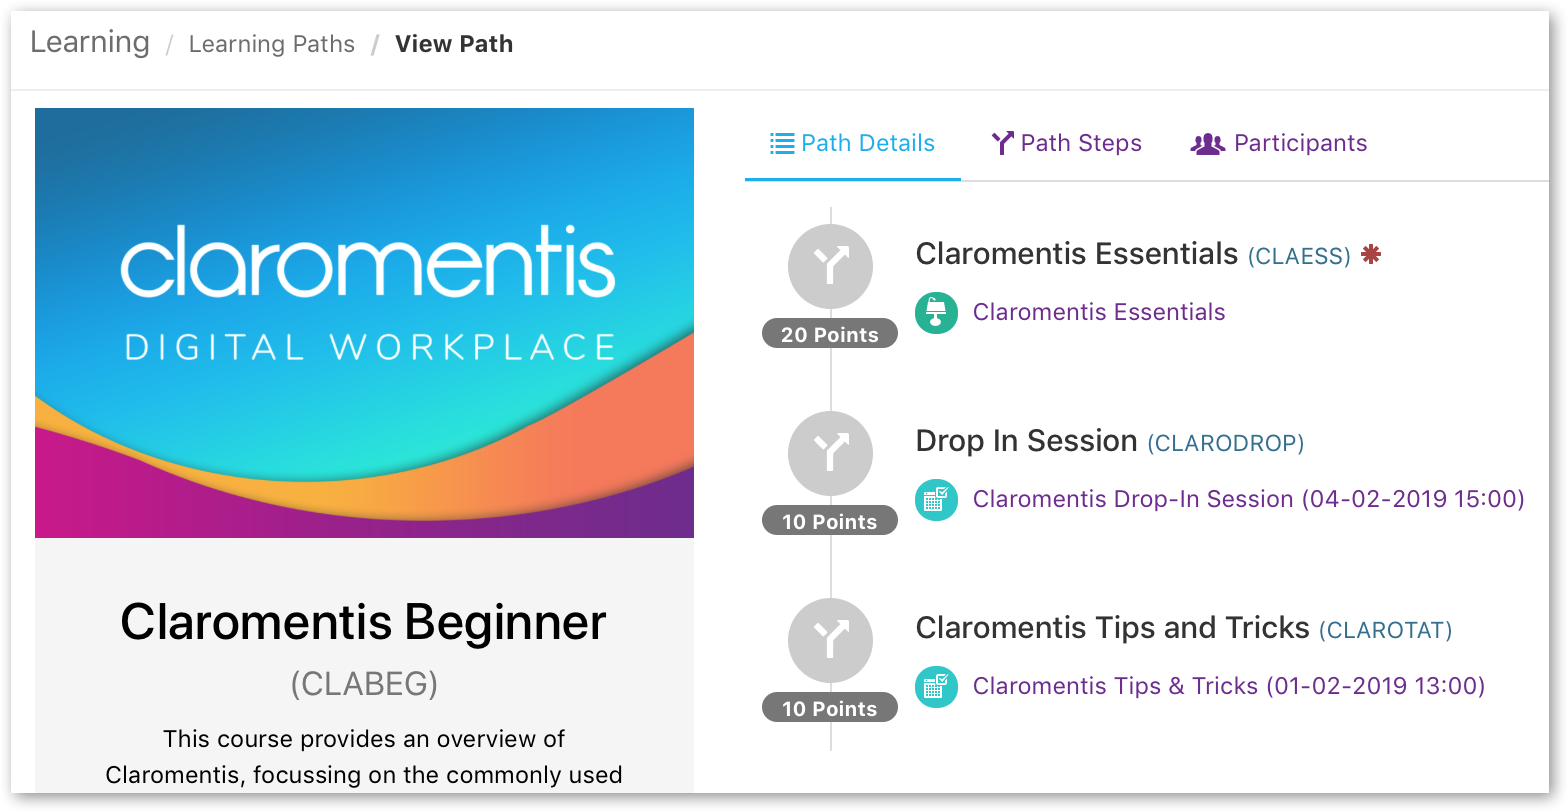 Claromentis learning path